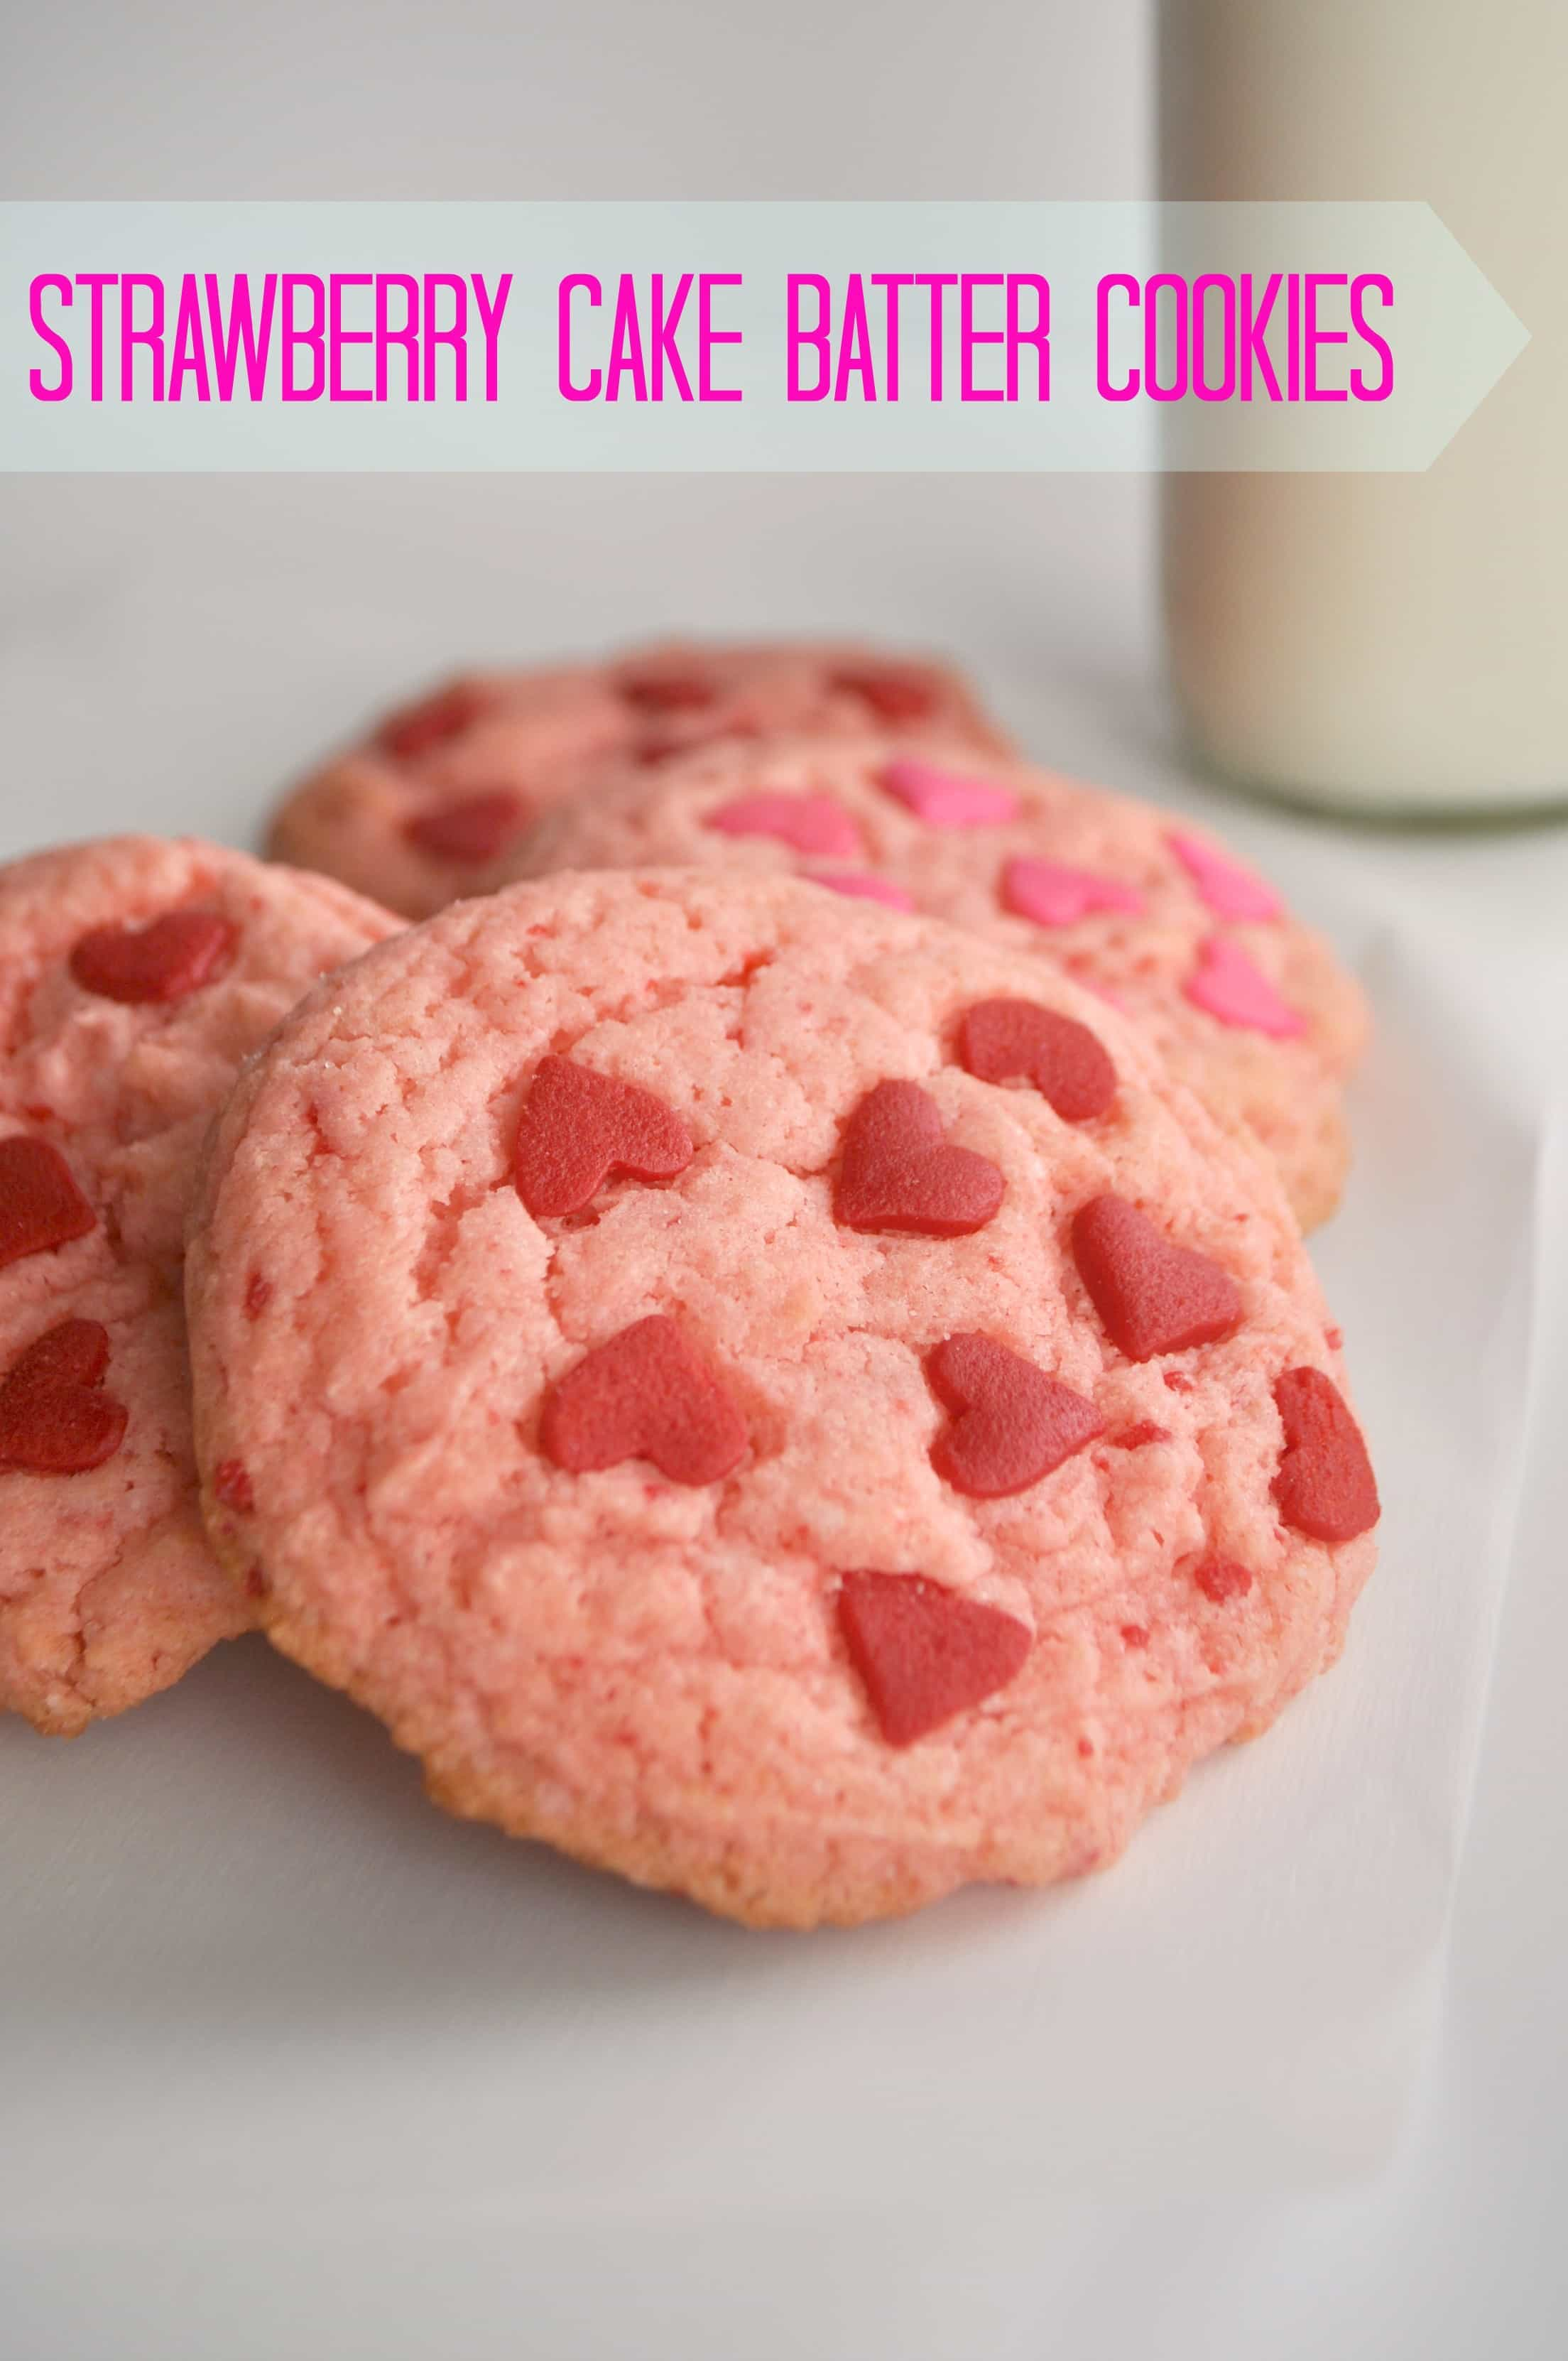 Strawberry Cake Mix Cookies. So tasty and super easy!! Decorate for a fun Valentine's Day treat |House of Yumm|